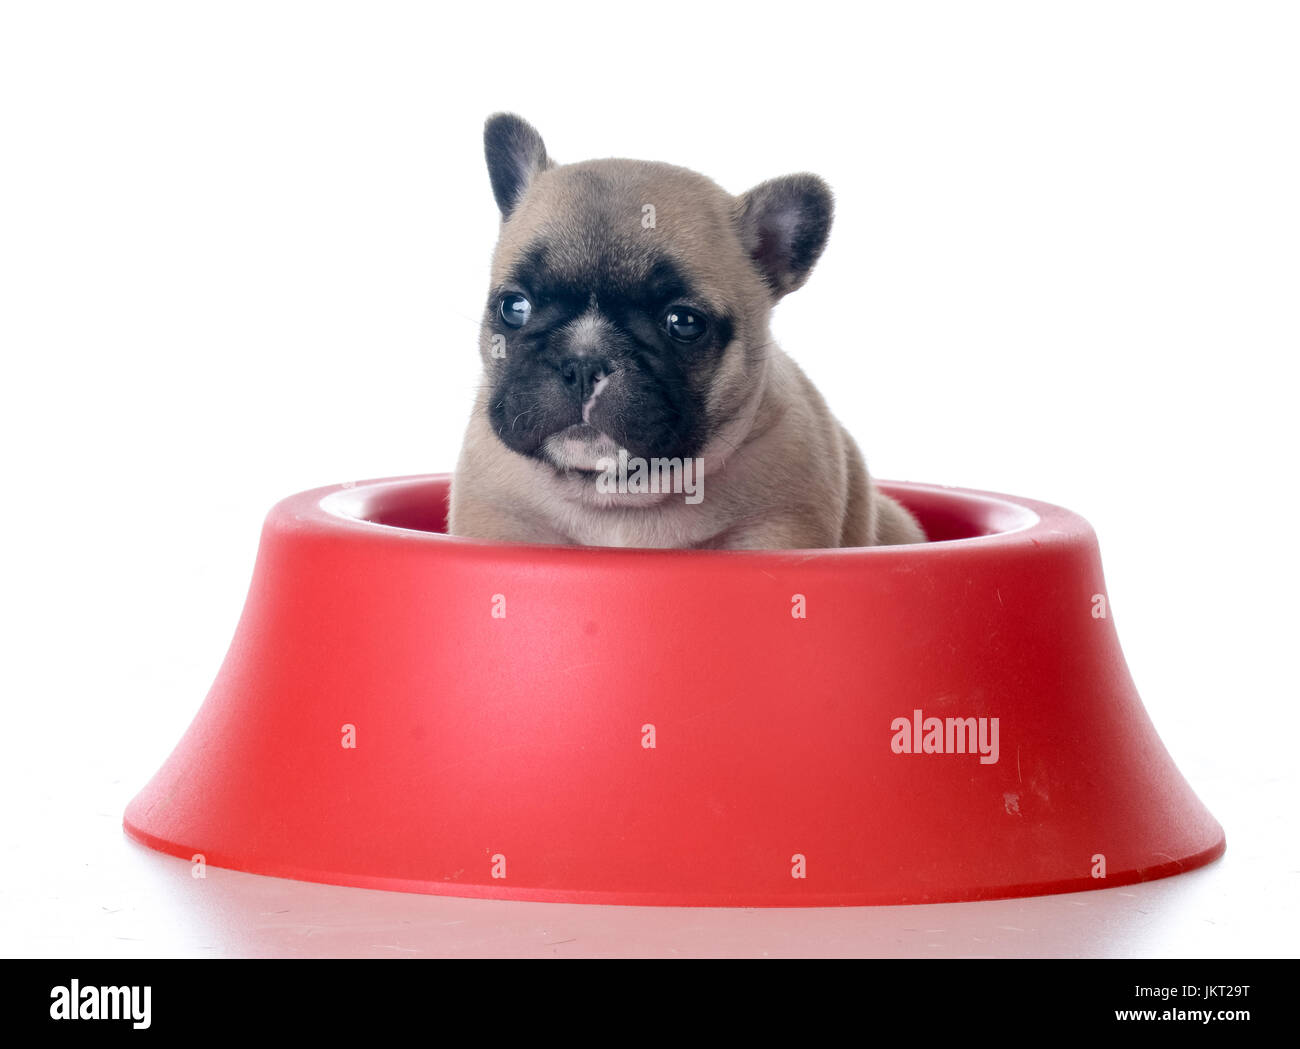 Cute French Bulldog Puppy Sitting In A Food Bowl On White Background Stock Photo Alamy